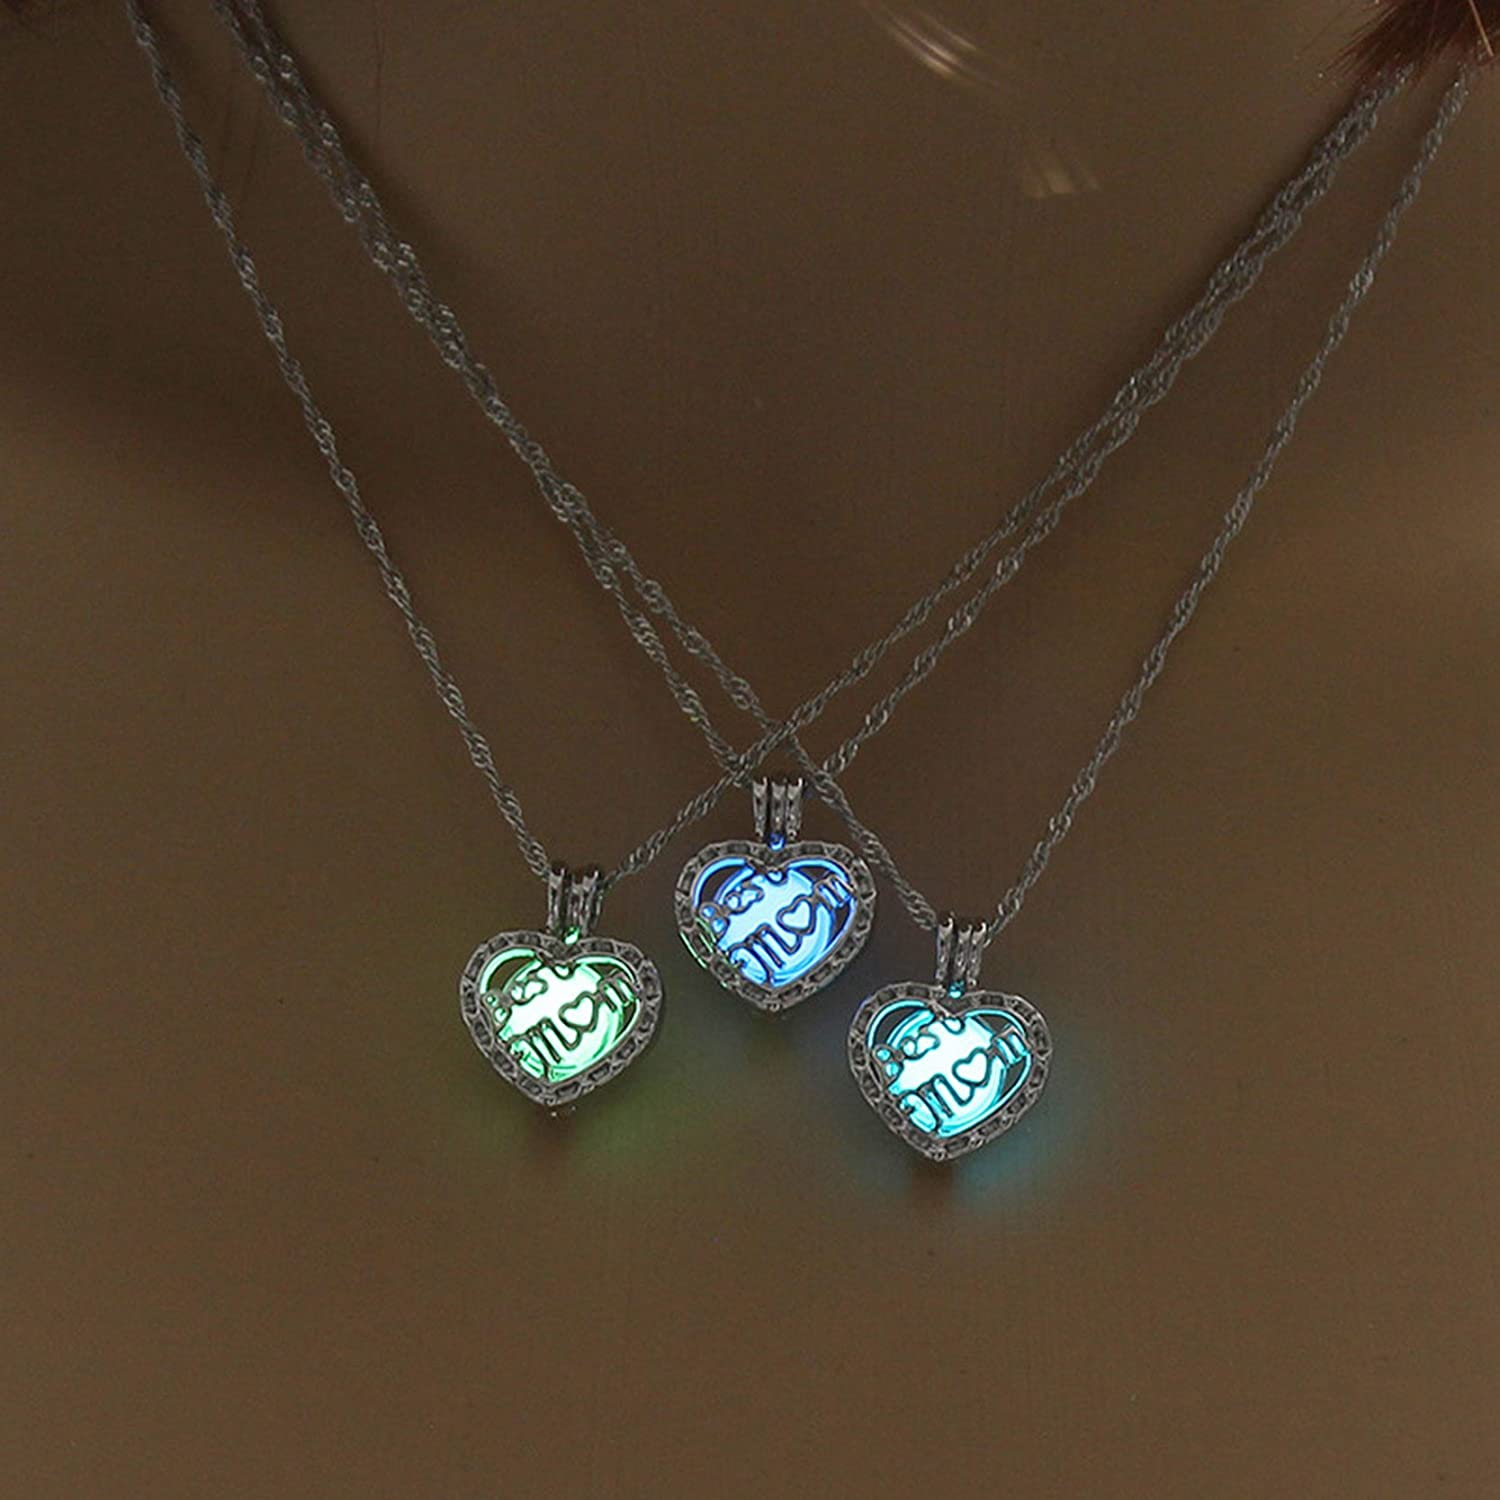 The Needed Necklace Luminous Mom Heart Necklace